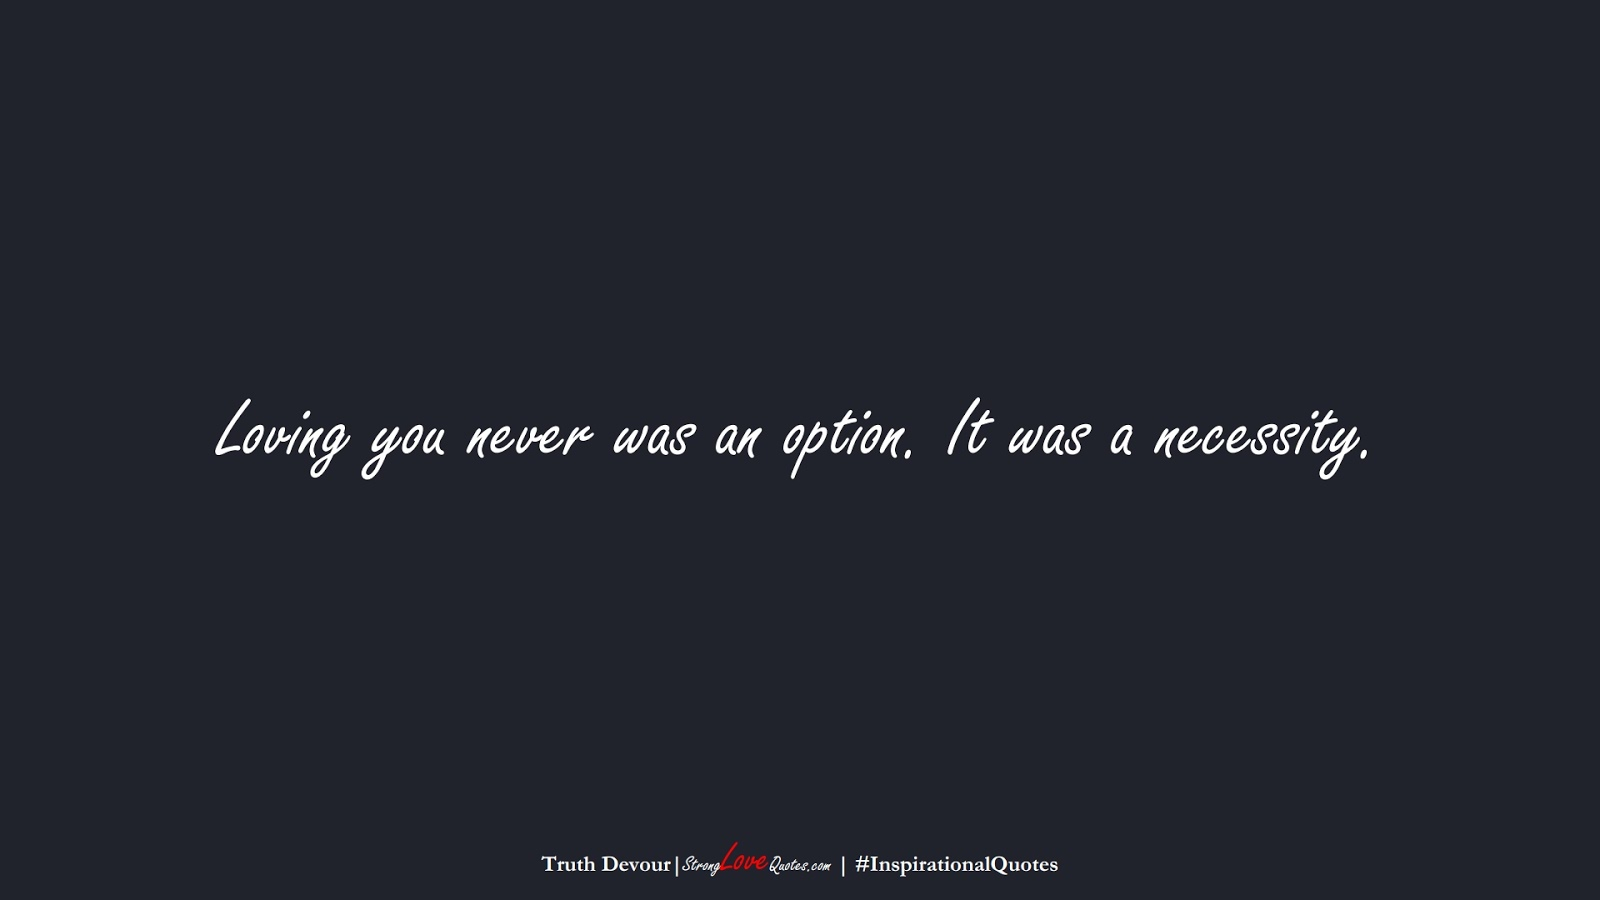 Loving you never was an option. It was a necessity. (Truth Devour);  #InspirationalQuotes